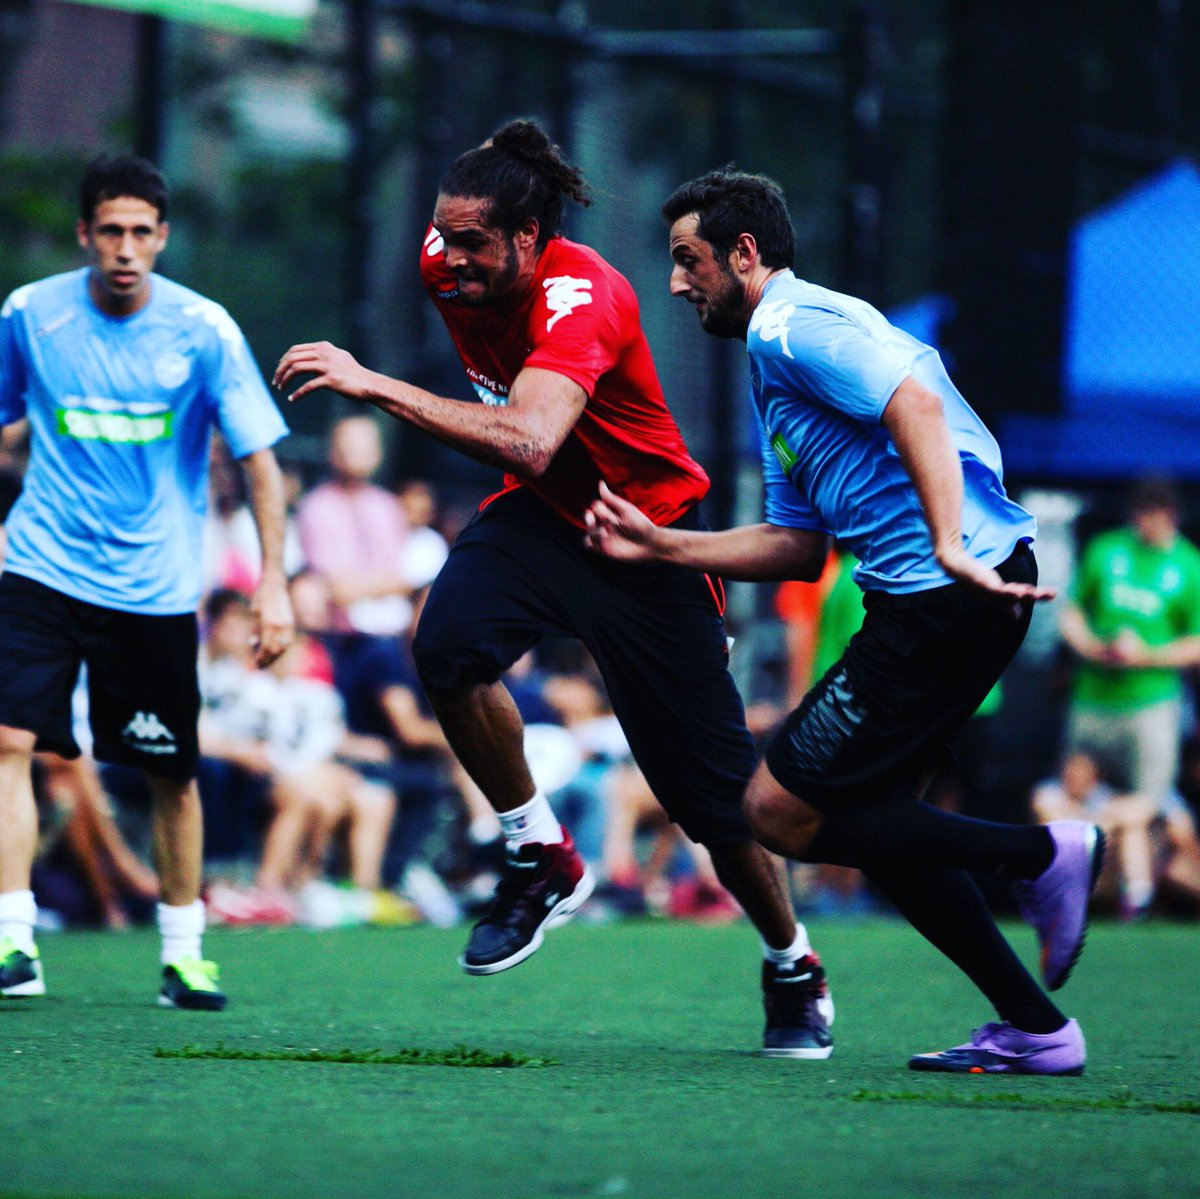 Our Showdown'ers go hard - 2013's @marcobelinelli + @JoakimNoah included! After the @FIFAWorldCup games tomorrow, come see Steve's #football + #NBA worlds collide at #SaraRooseveltPark for the @brfootball x @stevenash Fdn #ShowdownNY - don't miss it, #NYC! Stevenash.org/showdown